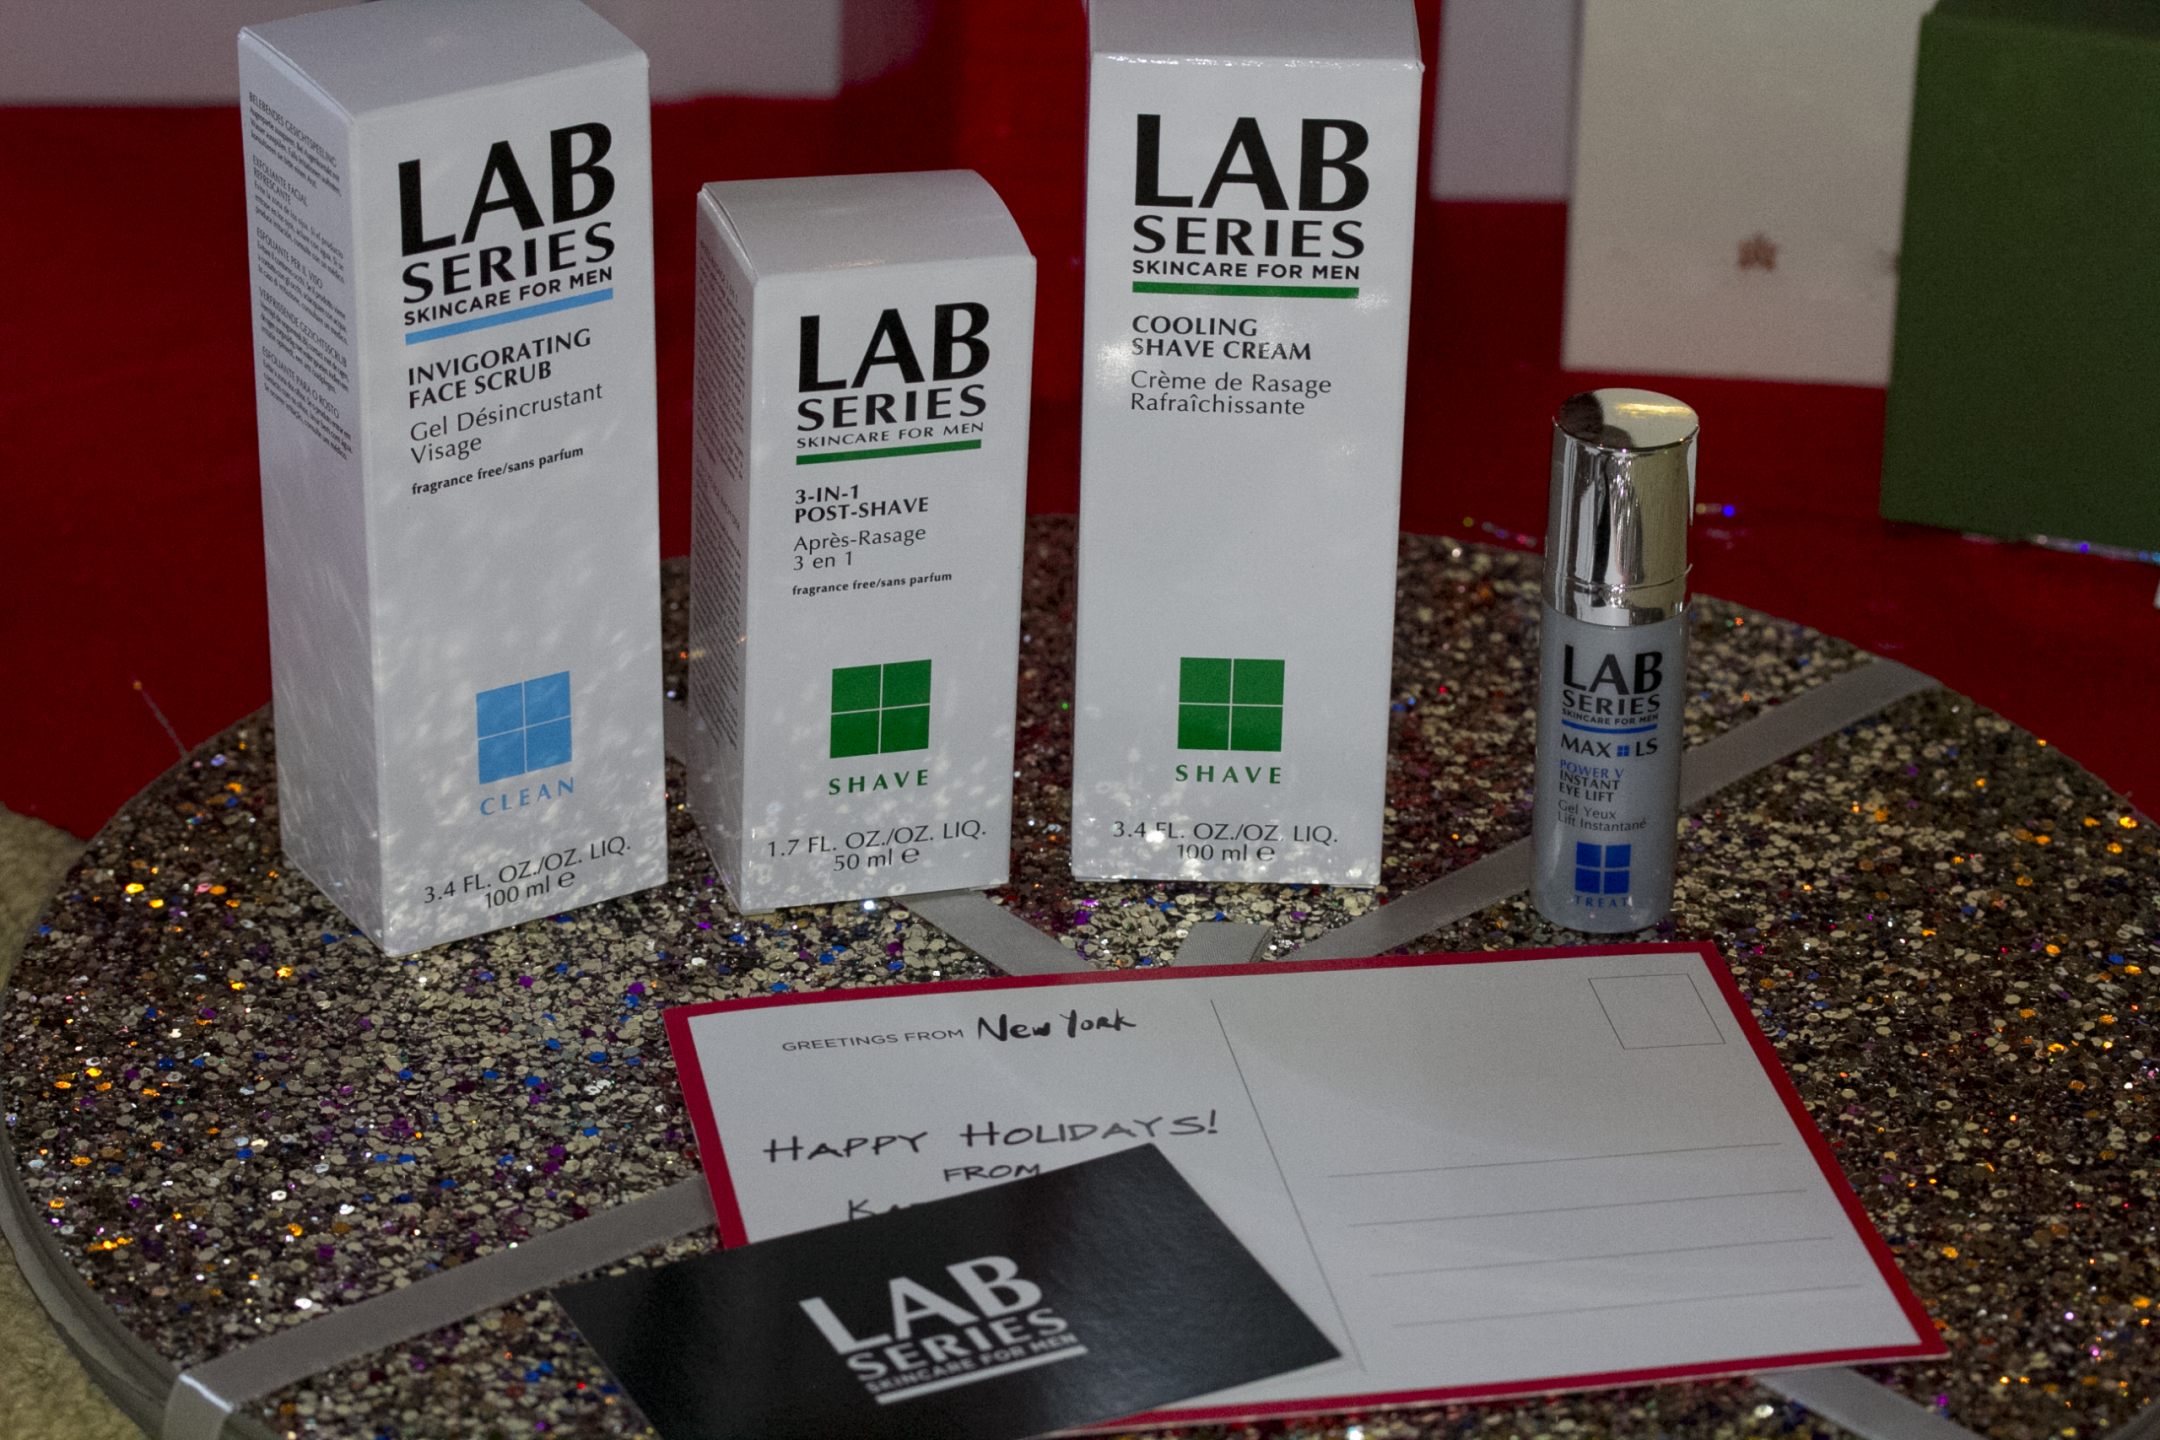 LAB Series skincare for men holiday gift guide favorites